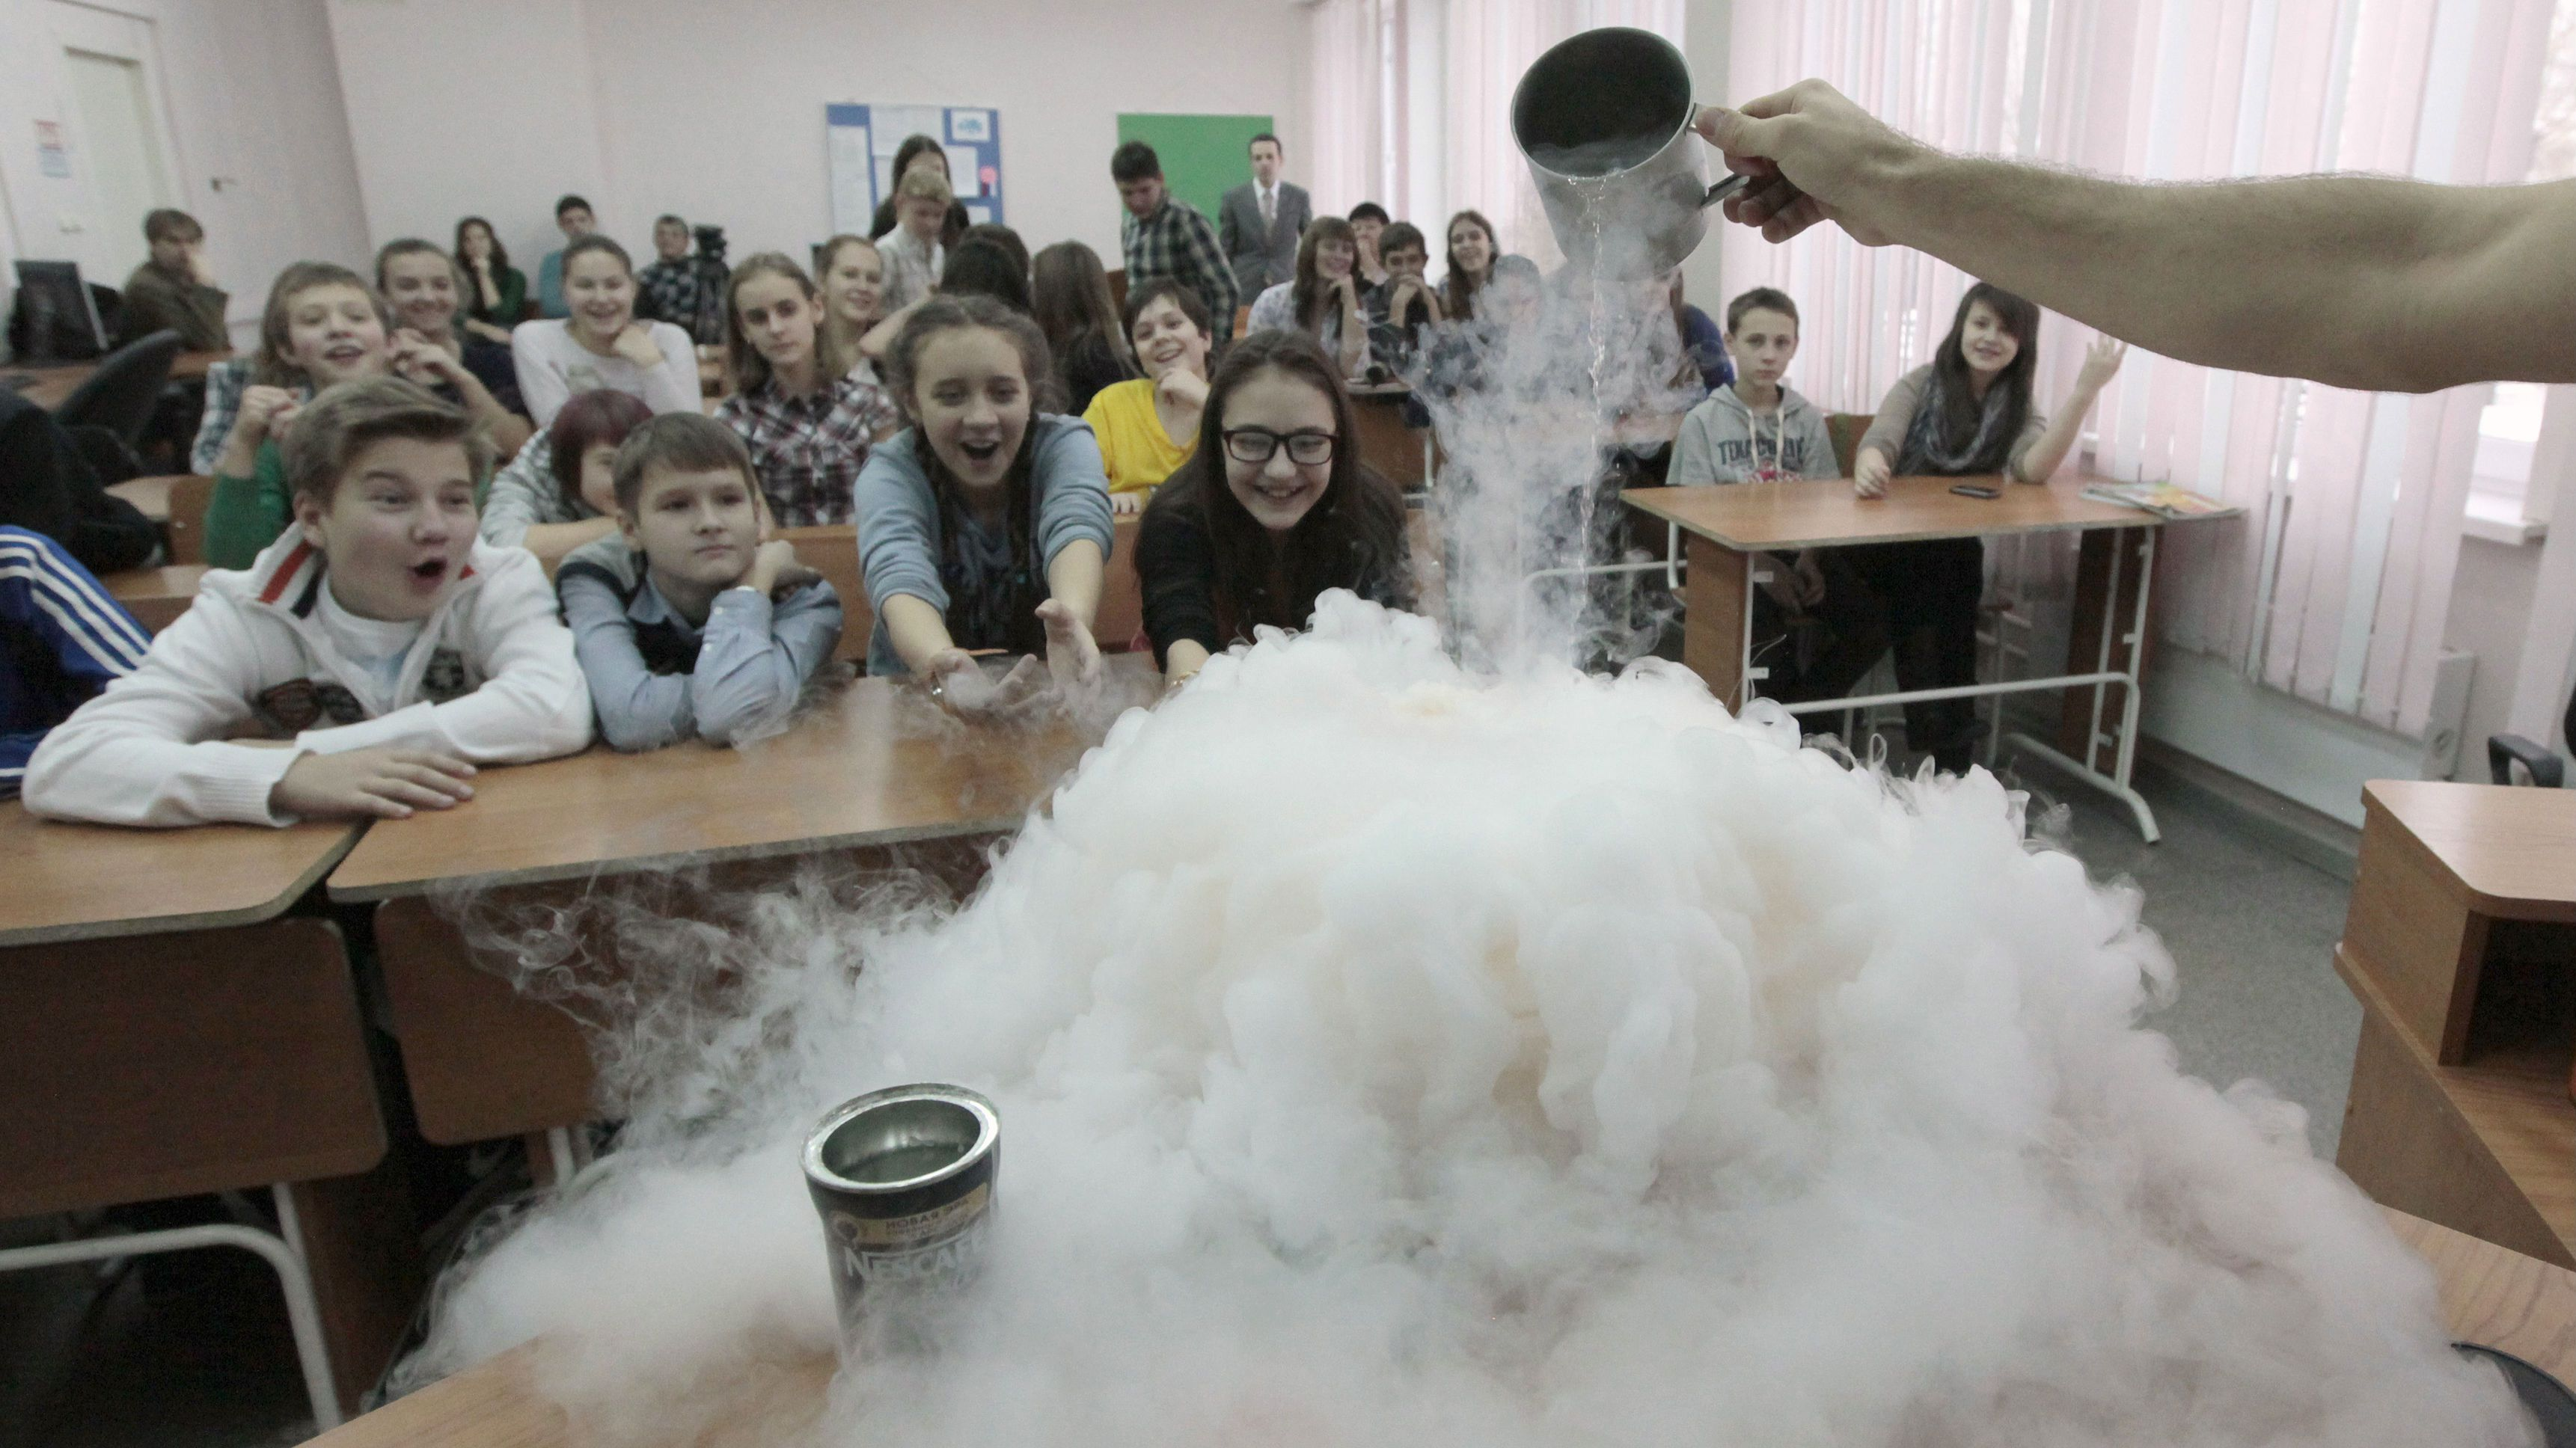 """Pupils watch the effect produced by liquid nitrogen during a demonstration at a local grammar school in Russia's Siberian city of Krasnoyarsk, November 21, 2012. Ivan Timofeenko and Pavel Pankin, students from the Siberian Federal University, specialize in applied mathematics and physics and have conducted experiments aimed at the popularization of the exact sciences, for the pupils of the 7th grade at the """"Universe"""" grammar school. Demonstrative and spectacular lessons, dedicated to chemical, physical, chemical-biological and physical-chemical experiments, are expected to be held at 10 comprehensive schools of Krasnoyarsk in order to select most talented and enthusiastic schoolchildren for facultative training at the university starting from February 2013, according to organizers. REUTERS/Ilya Naymushin (RUSSIA - Tags: EDUCATION SCIENCE TECHNOLOGY SOCIETY)"""